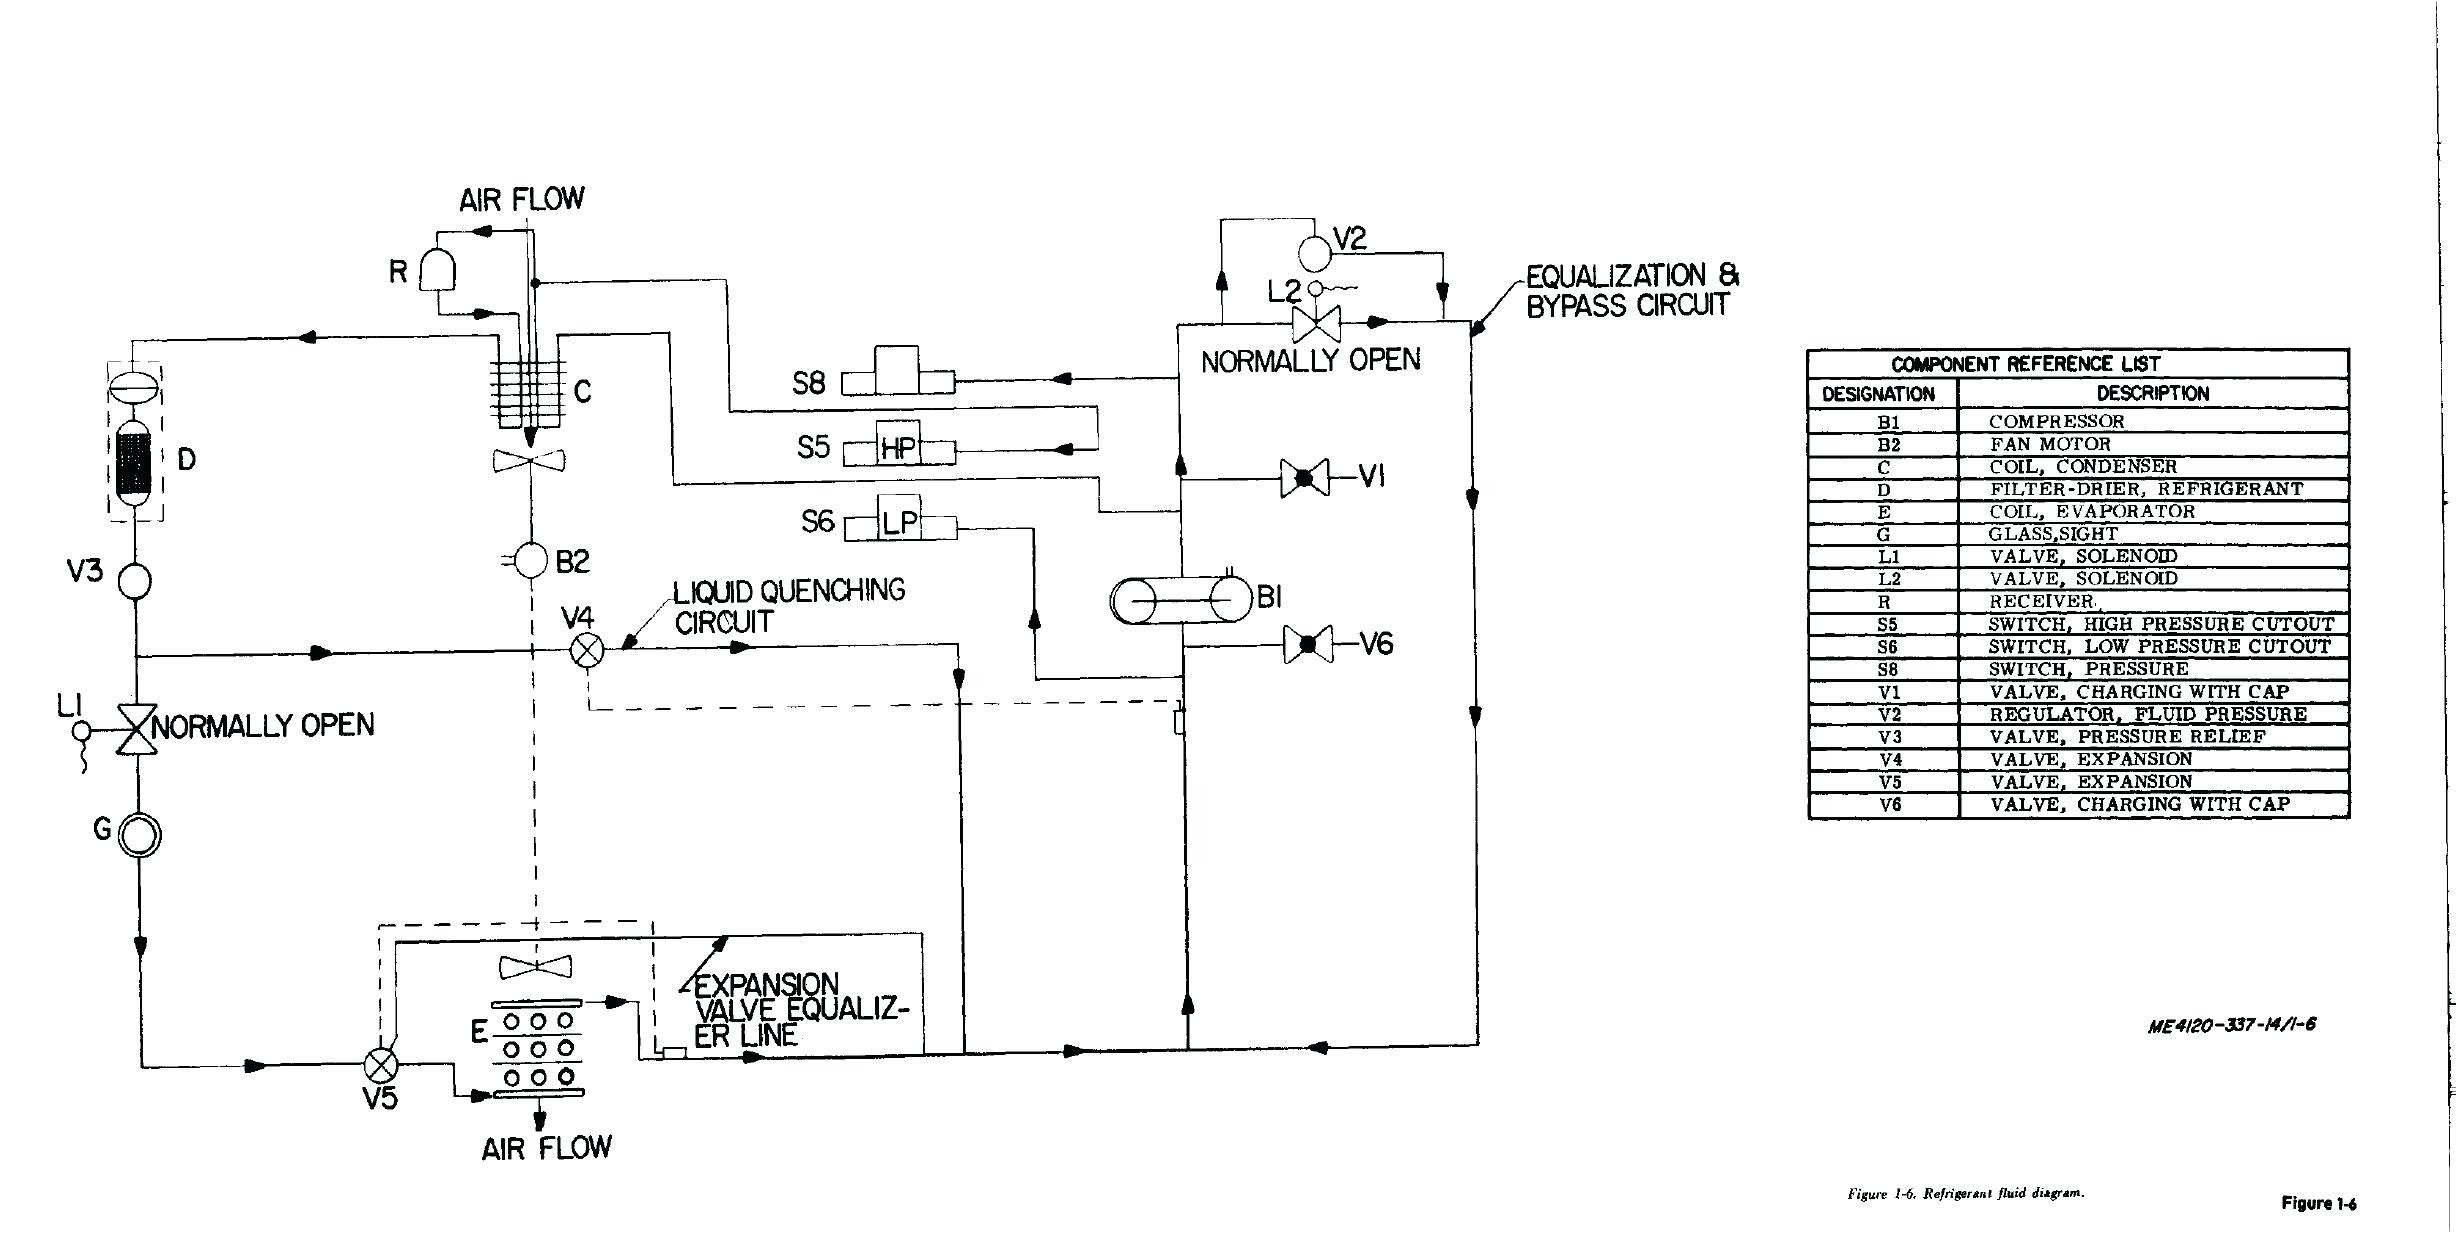 Car ac wiring diagram pdf free download wiring diagram xwiaw basic car ac working diagram split air conditioner wiring diagram pdf asfbconference2016 Image collections